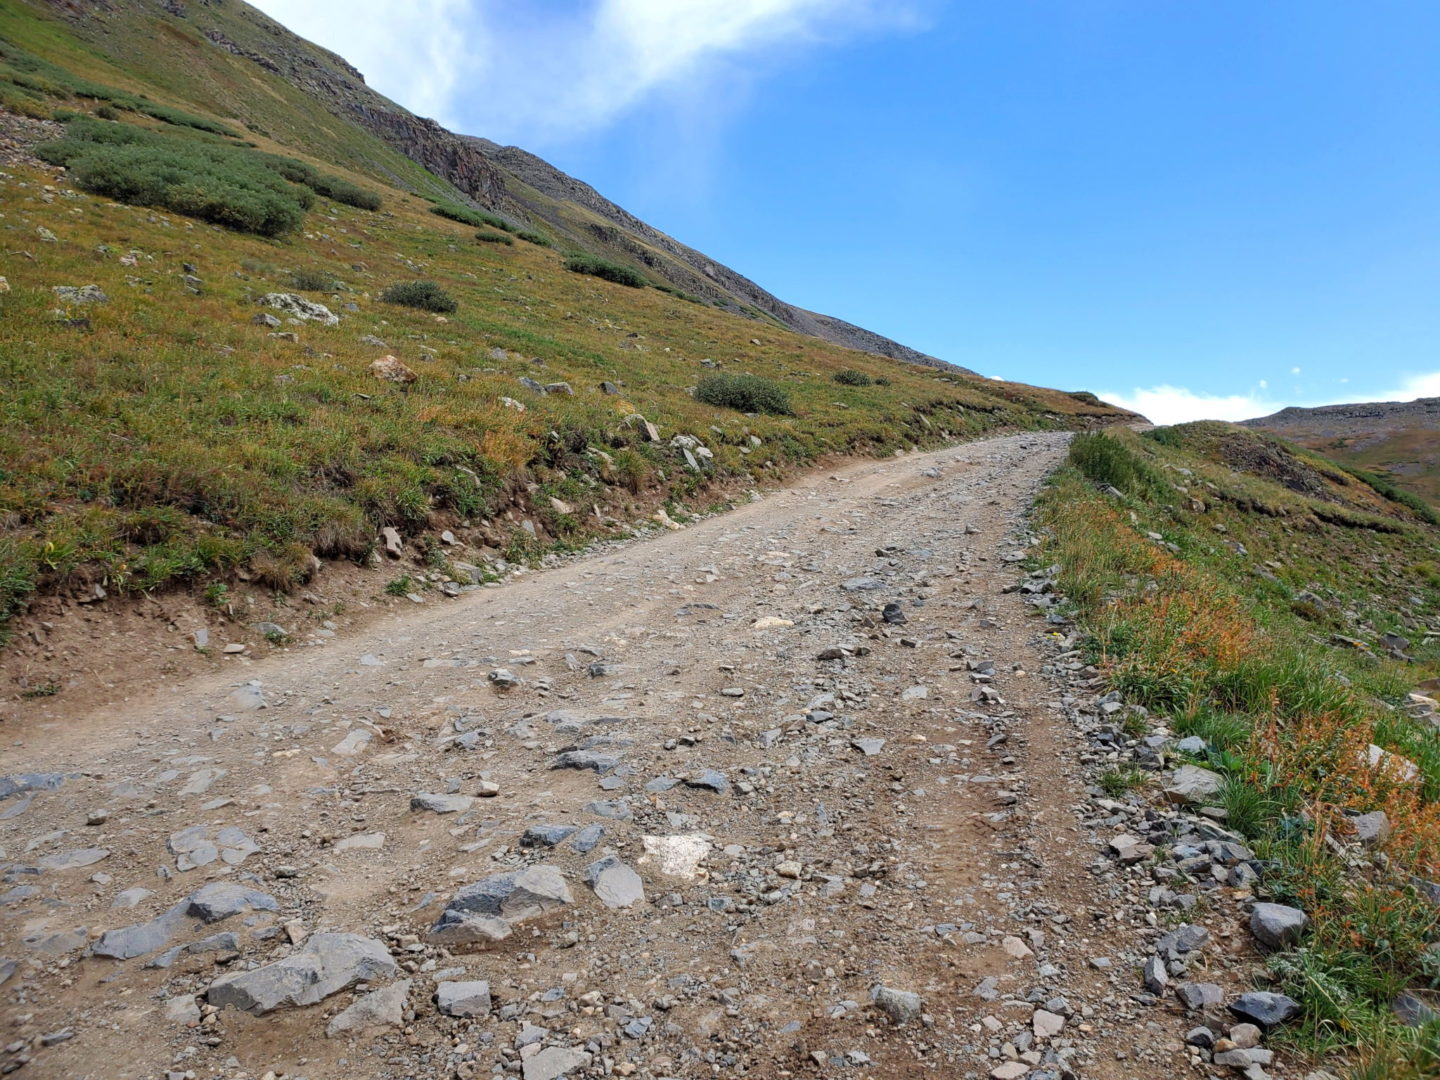 The road is rocky but solid.